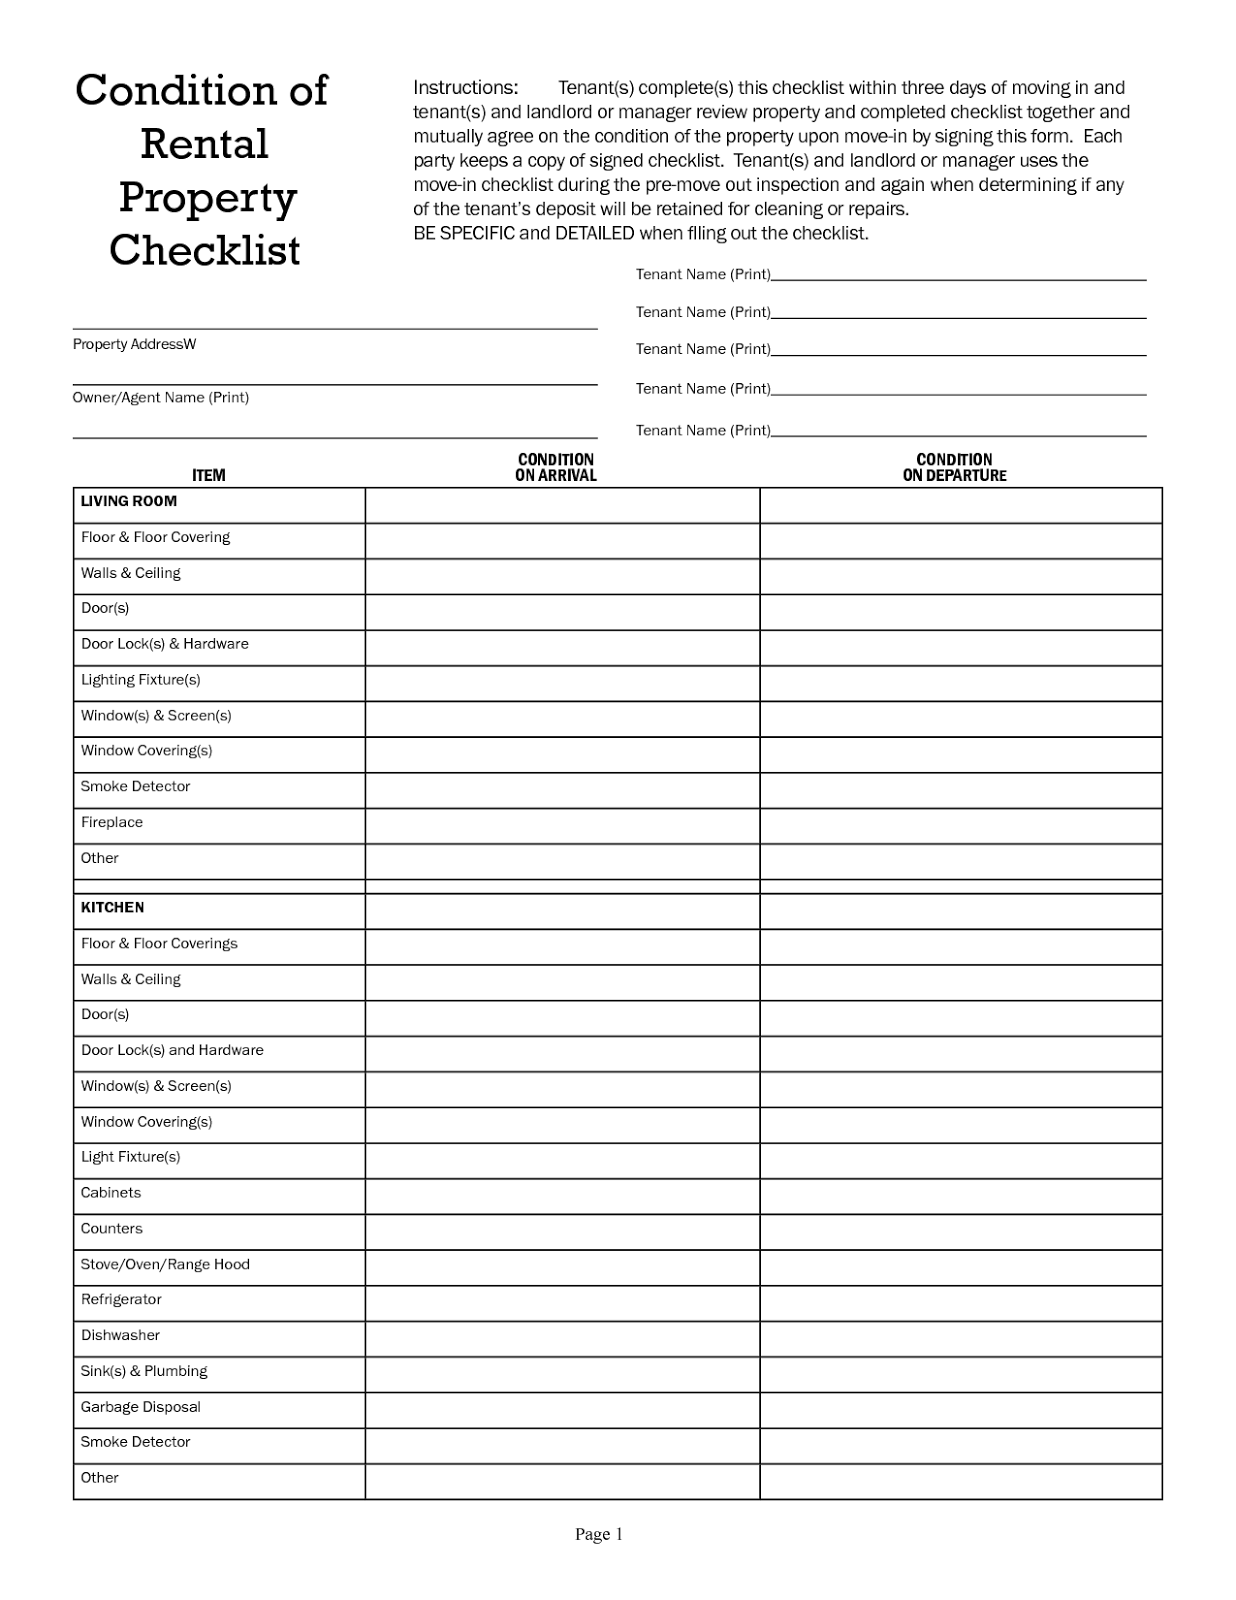 Work Resumedownload checklist template free wedding checklist – Free Landlord Inventory Template